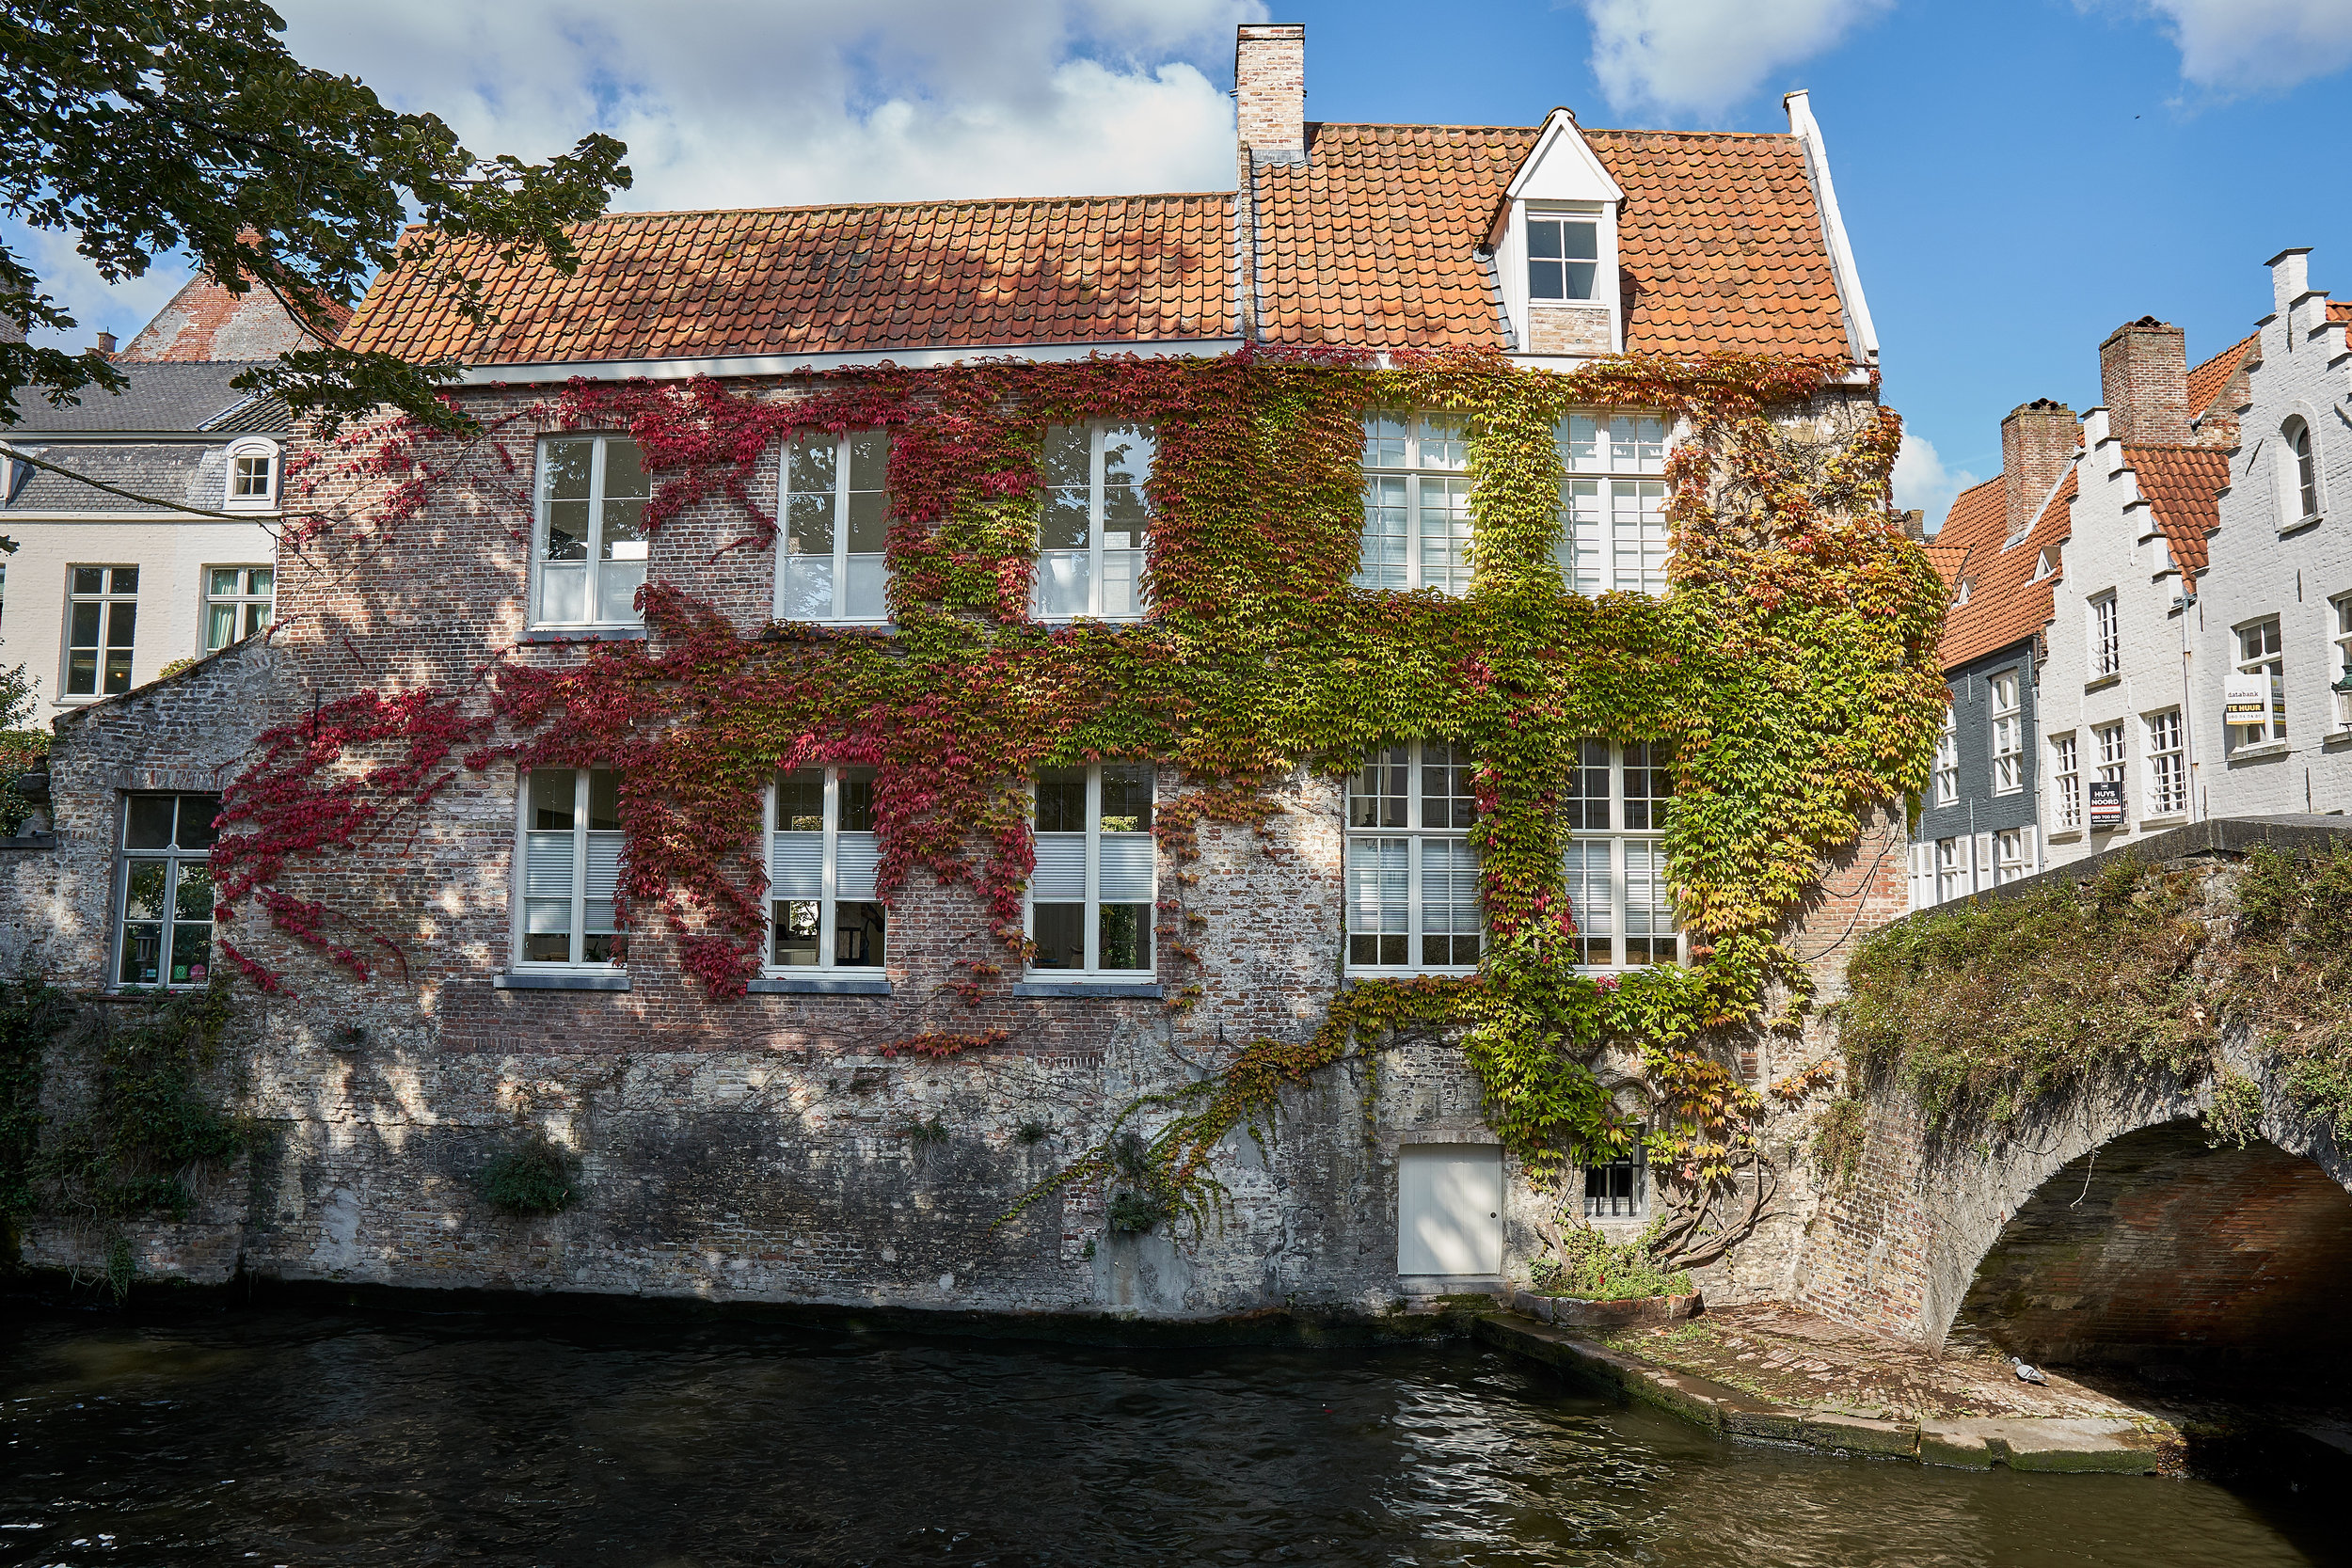 vines on house by canal.jpg